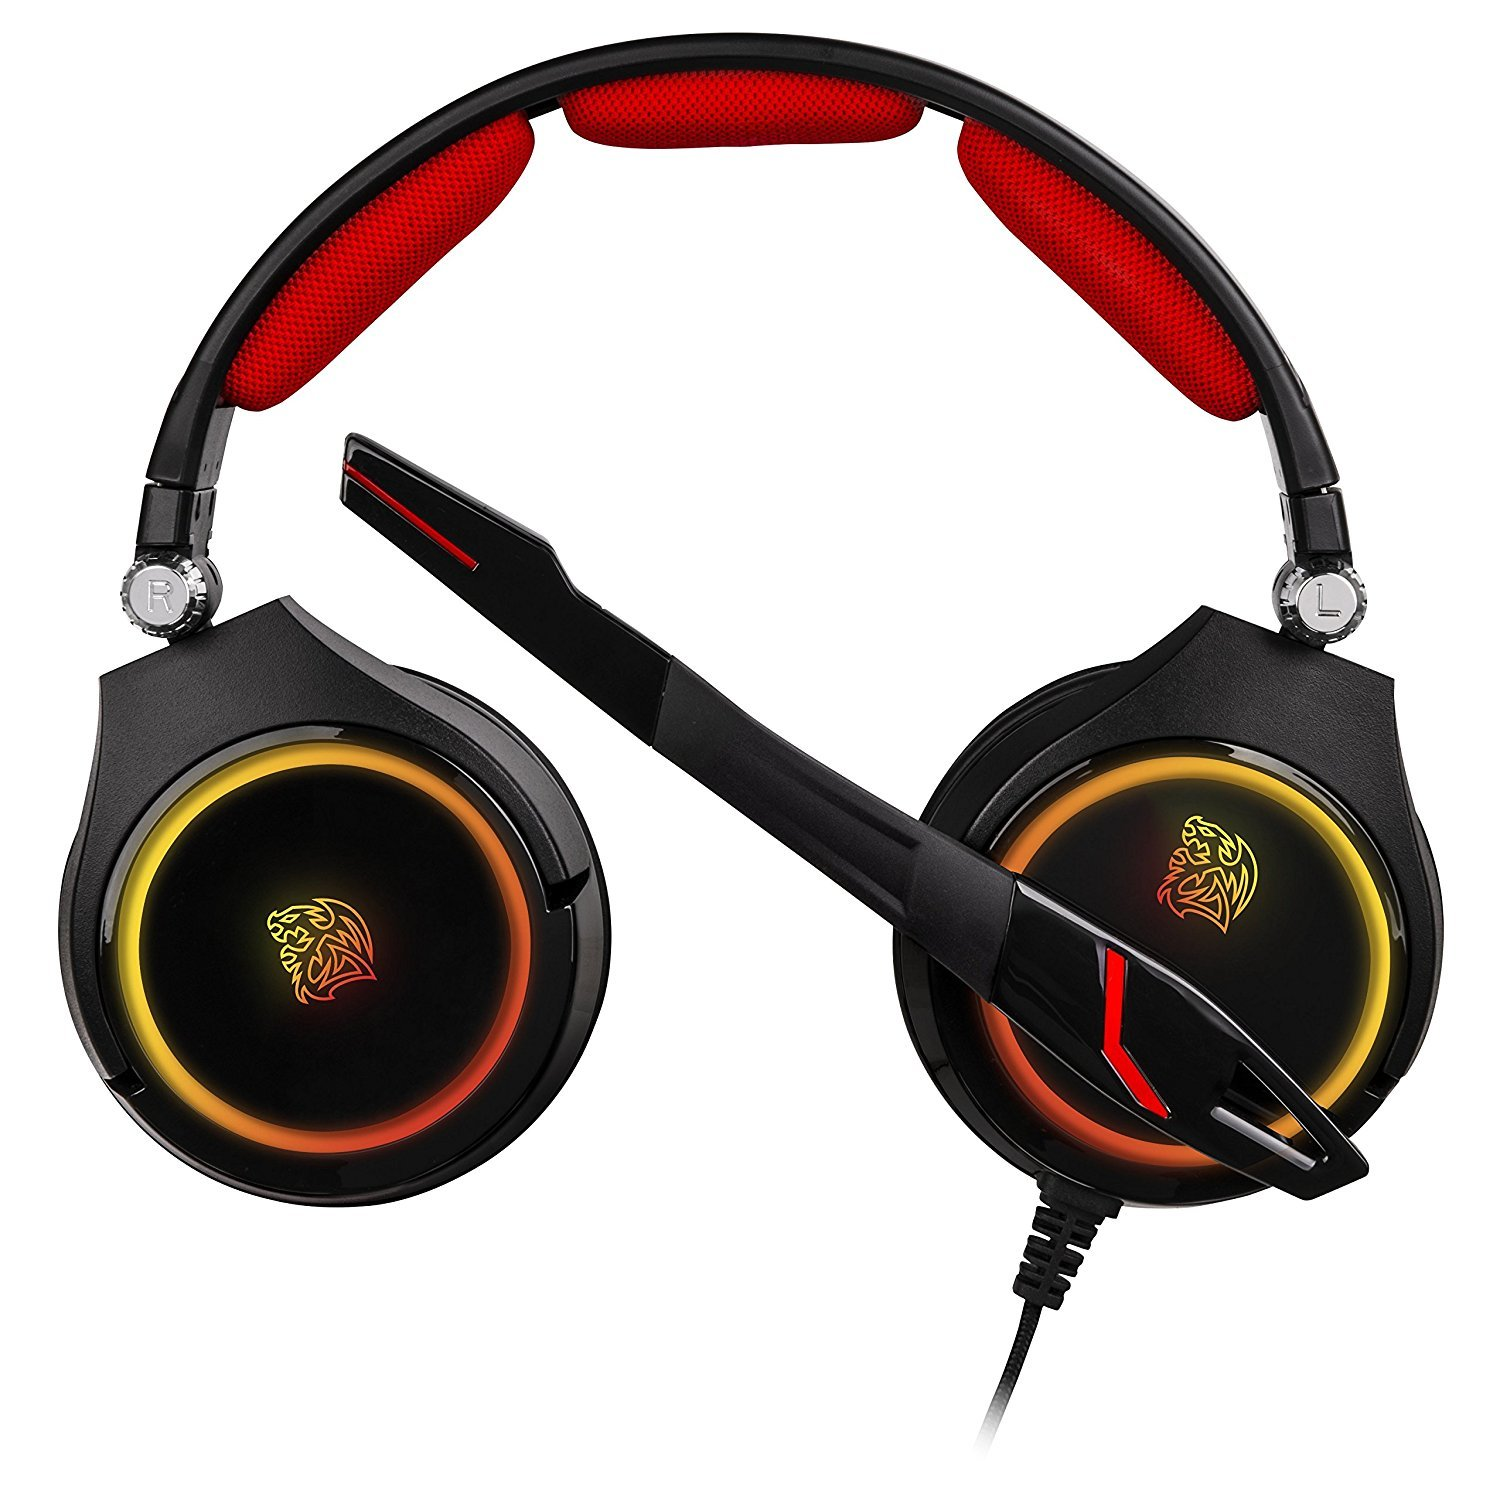 ThermalTake CRONOS RGB 3D 7 1 Surround Sound PC Gaming Headset